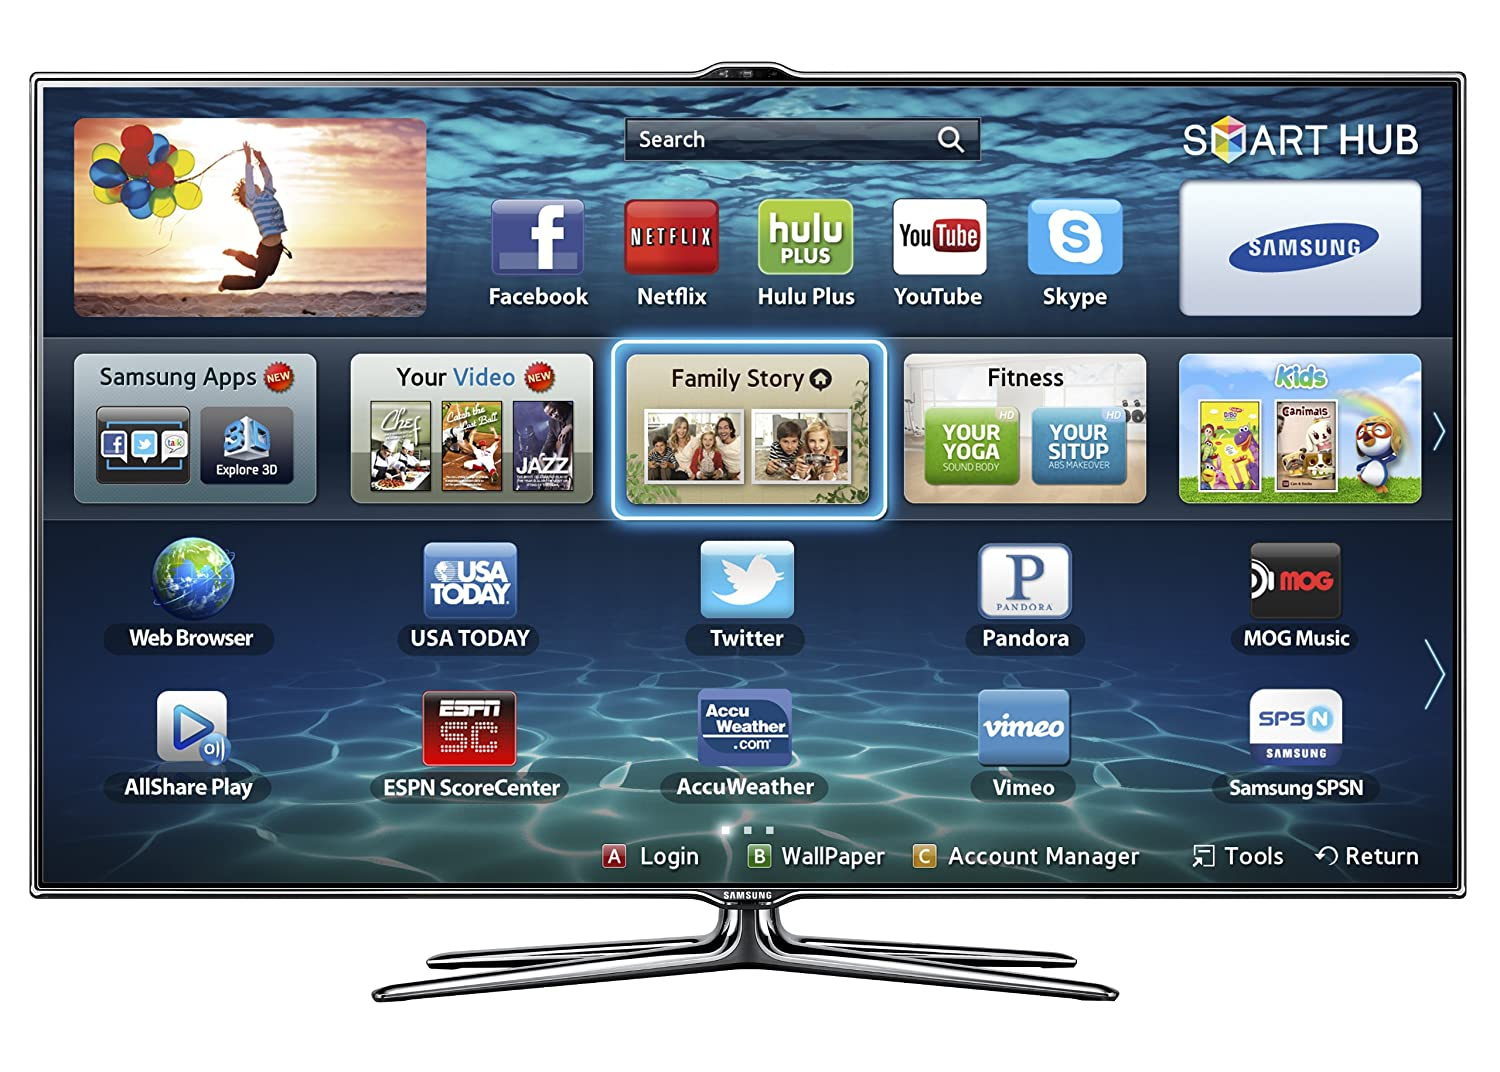 samsung tv 90 inch. amazon.com: samsung un55es7500 55-inch 1080p 240hz 3d slim led hdtv (black) (2012 model): electronics tv 90 inch d